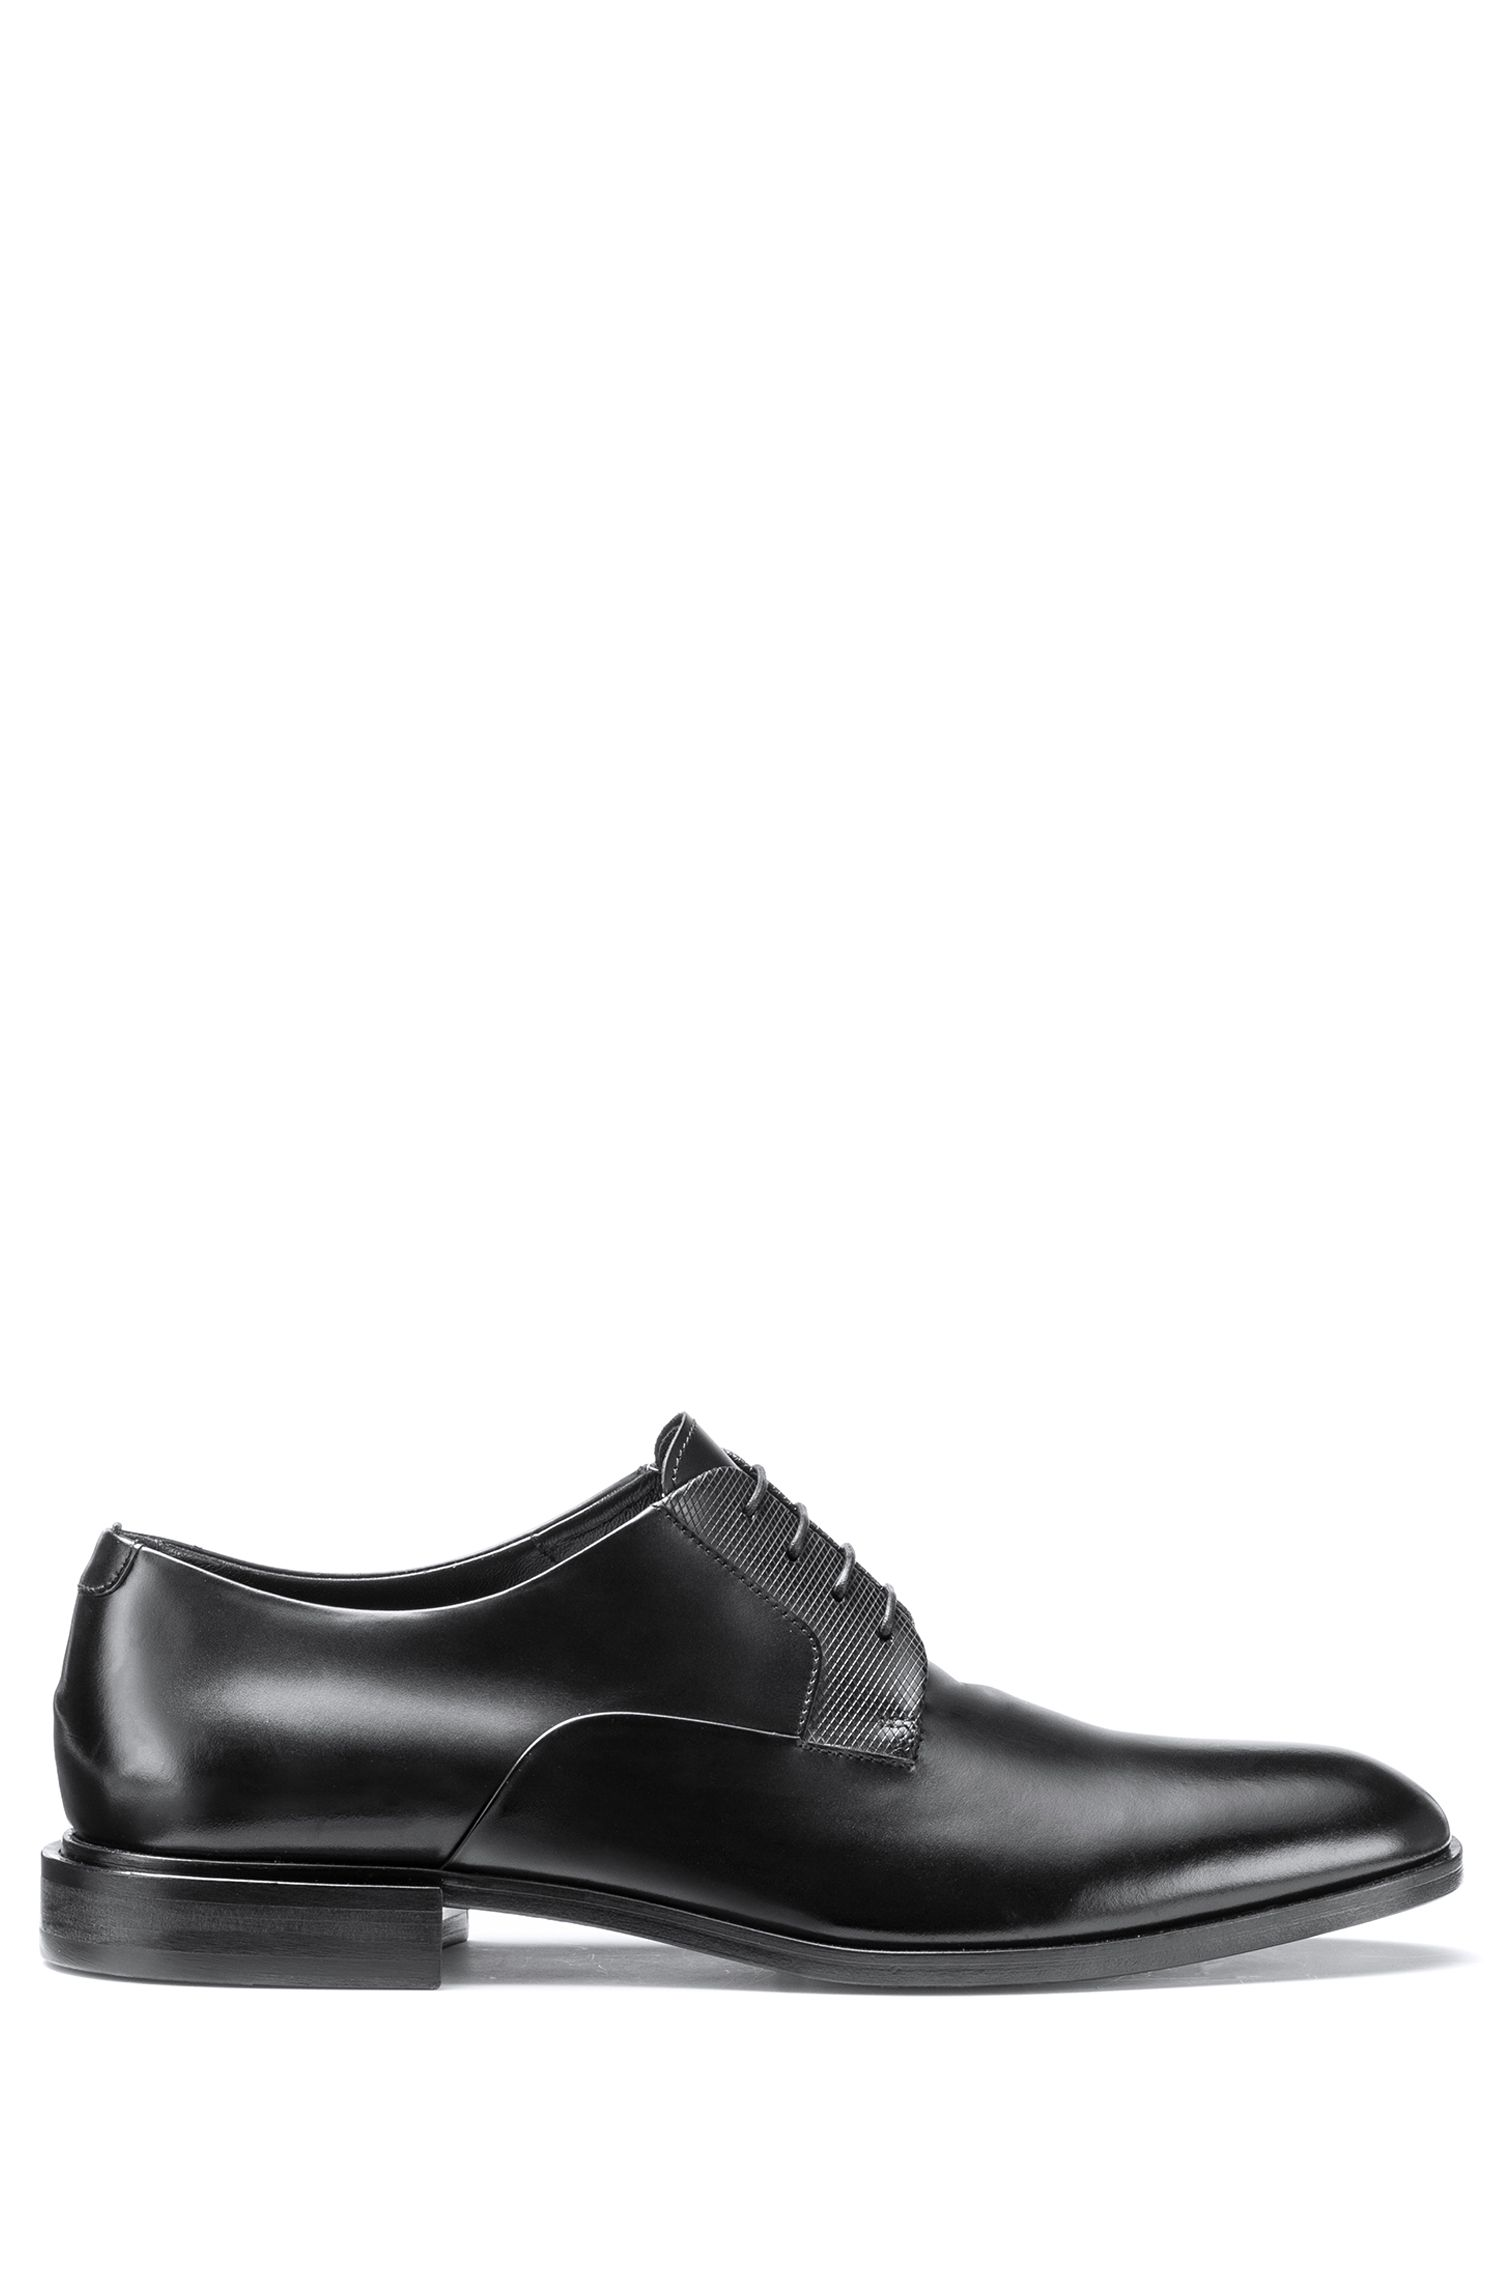 Lace-up Derby shoes in polished leather